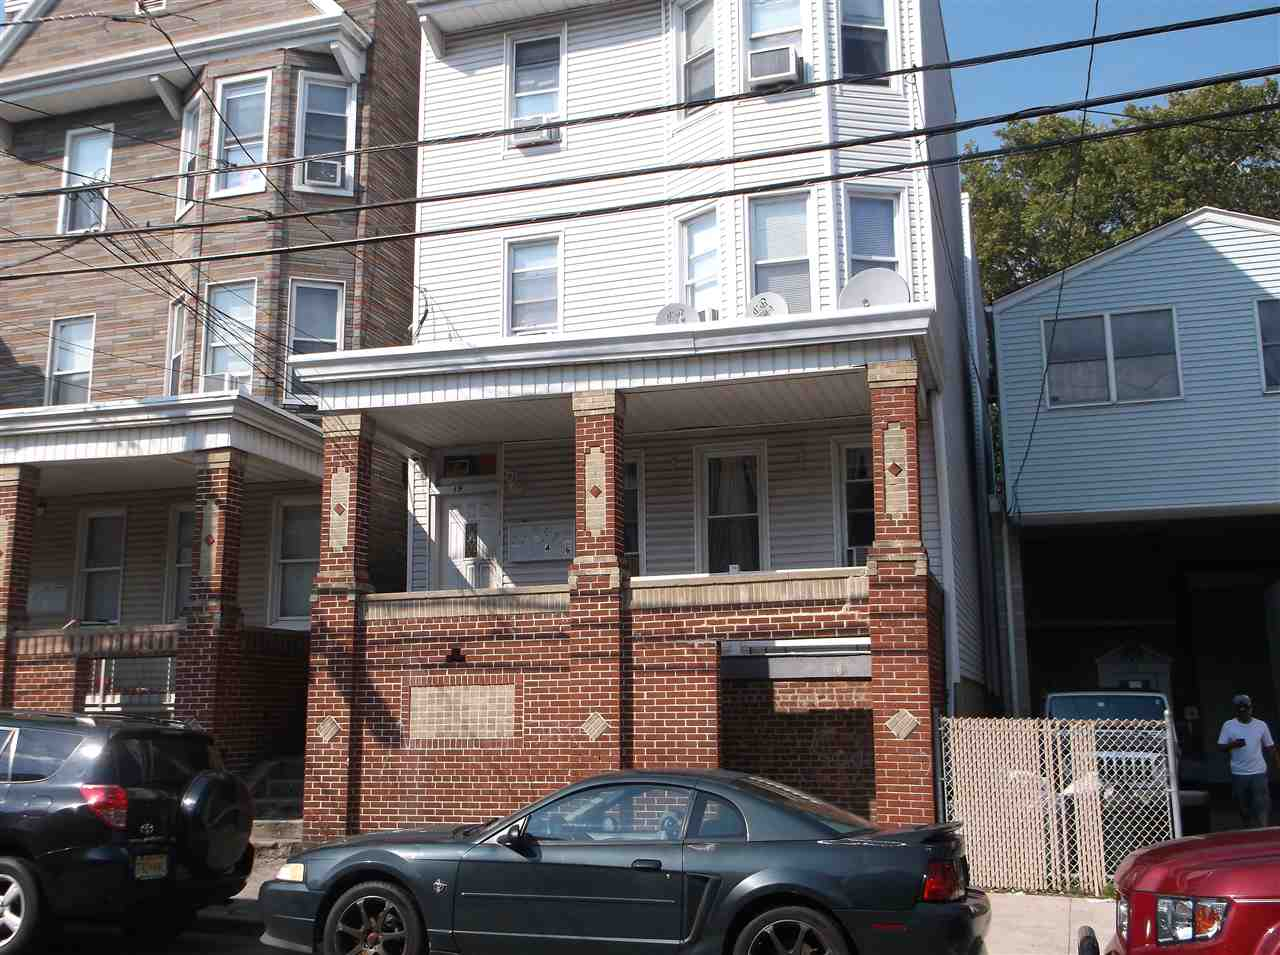 19 WEST 18TH ST, Bayonne, NJ 07002